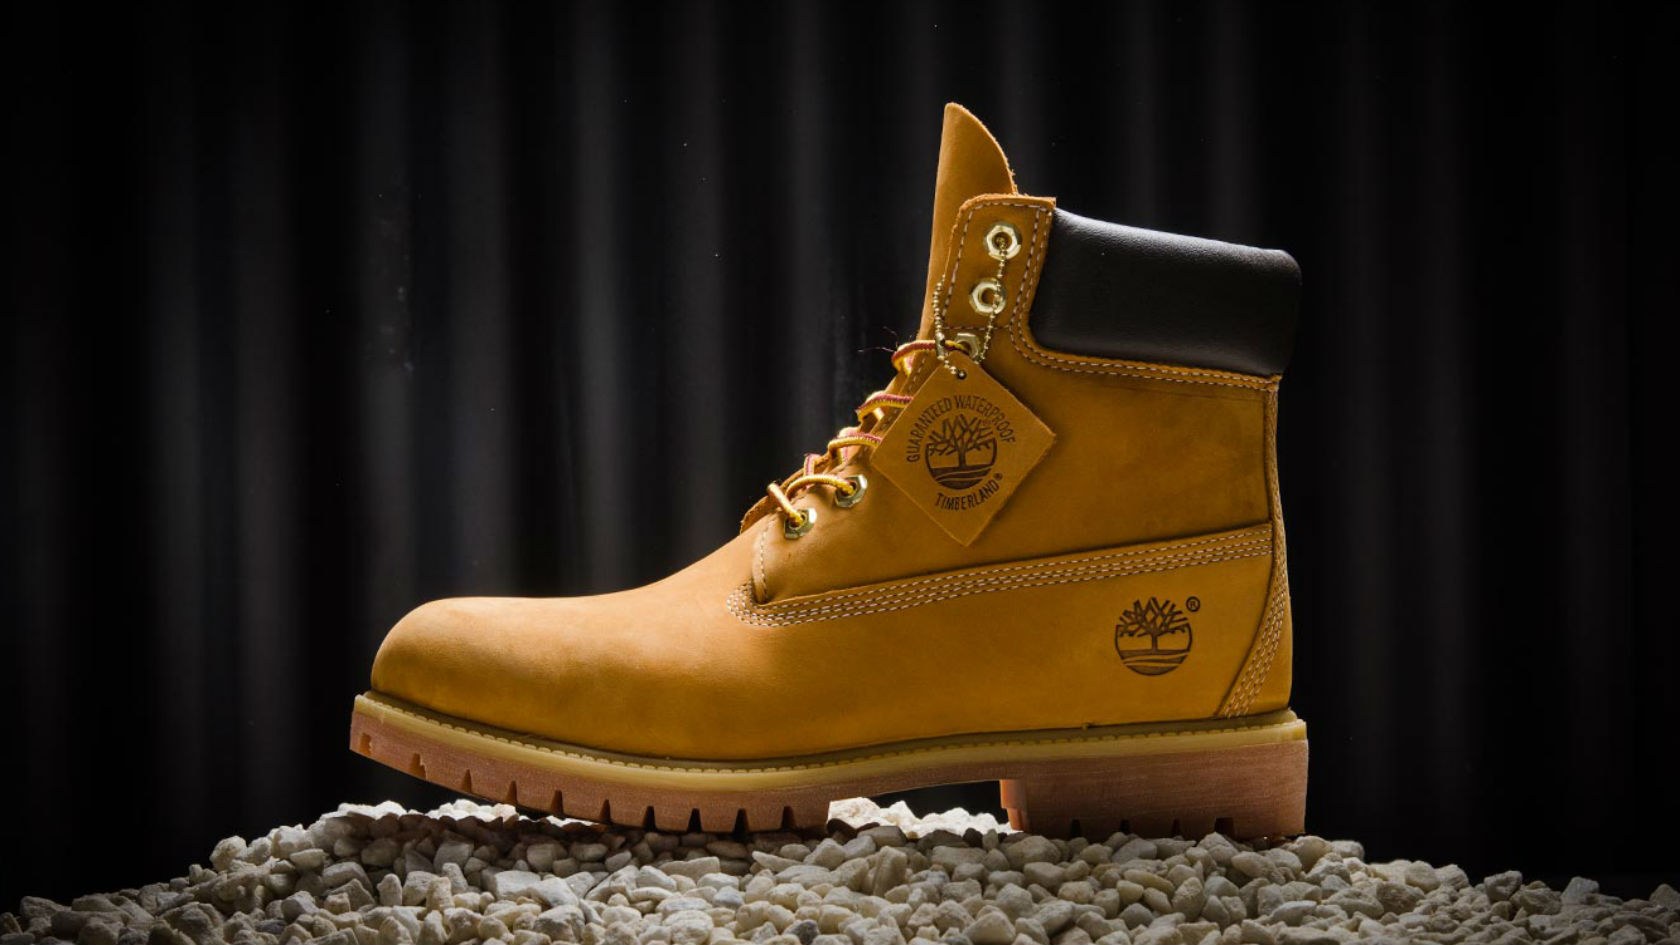 Talking Timberland Boots Hip Hop S Most Essential Fashion